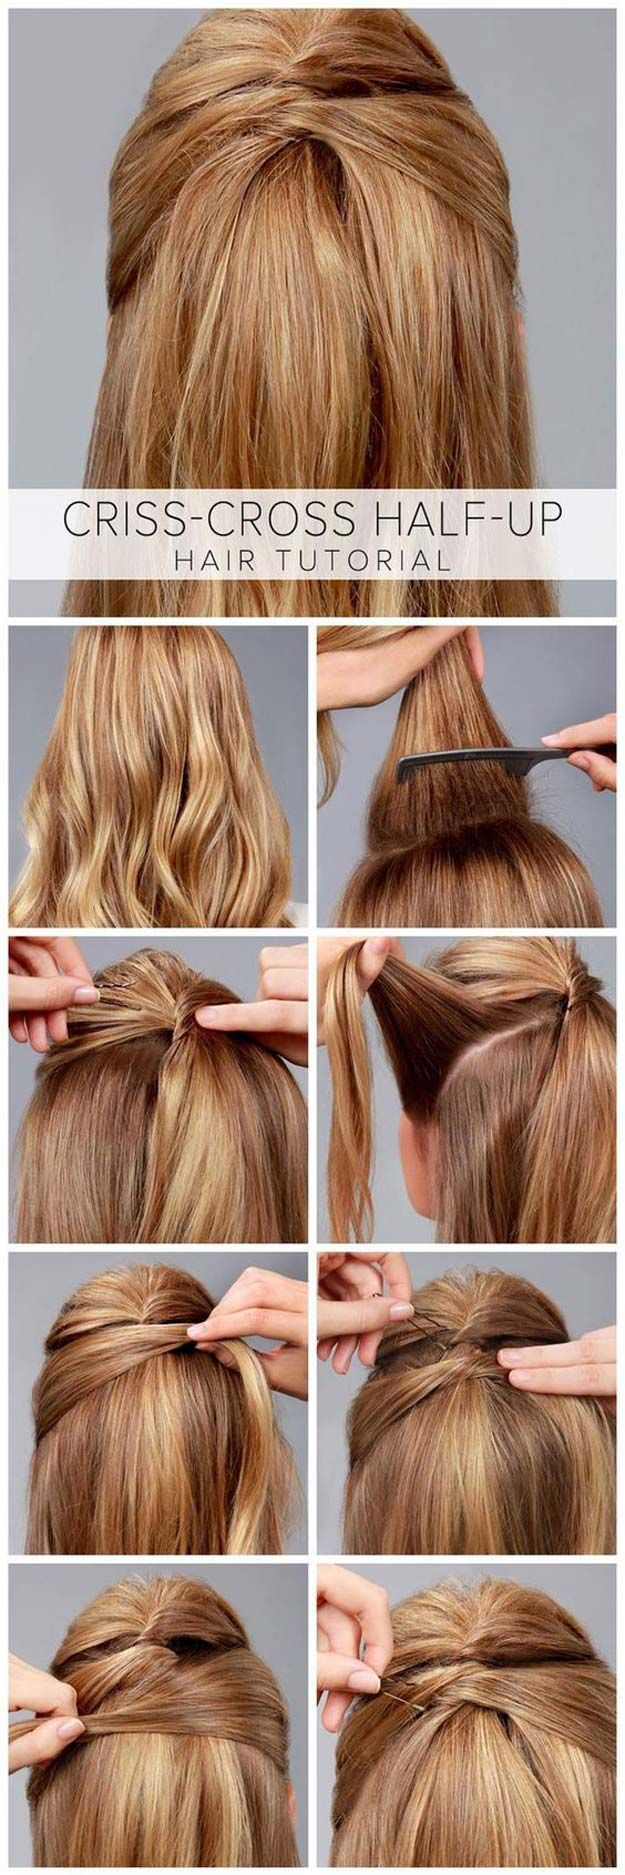 Best Hairstyles for Long Hair - Summer Styles for Long Hair - Step by Step Tutorials for Easy Curls, Updo, Half Up, Braids and Lazy Girl Looks. Prom Ideas, Special Occasion Hair and Braiding Instructions for Teens, Teenagers and Adults, Women and Girls http://diyprojectsforteens.com/best-hairstyles-long-hair